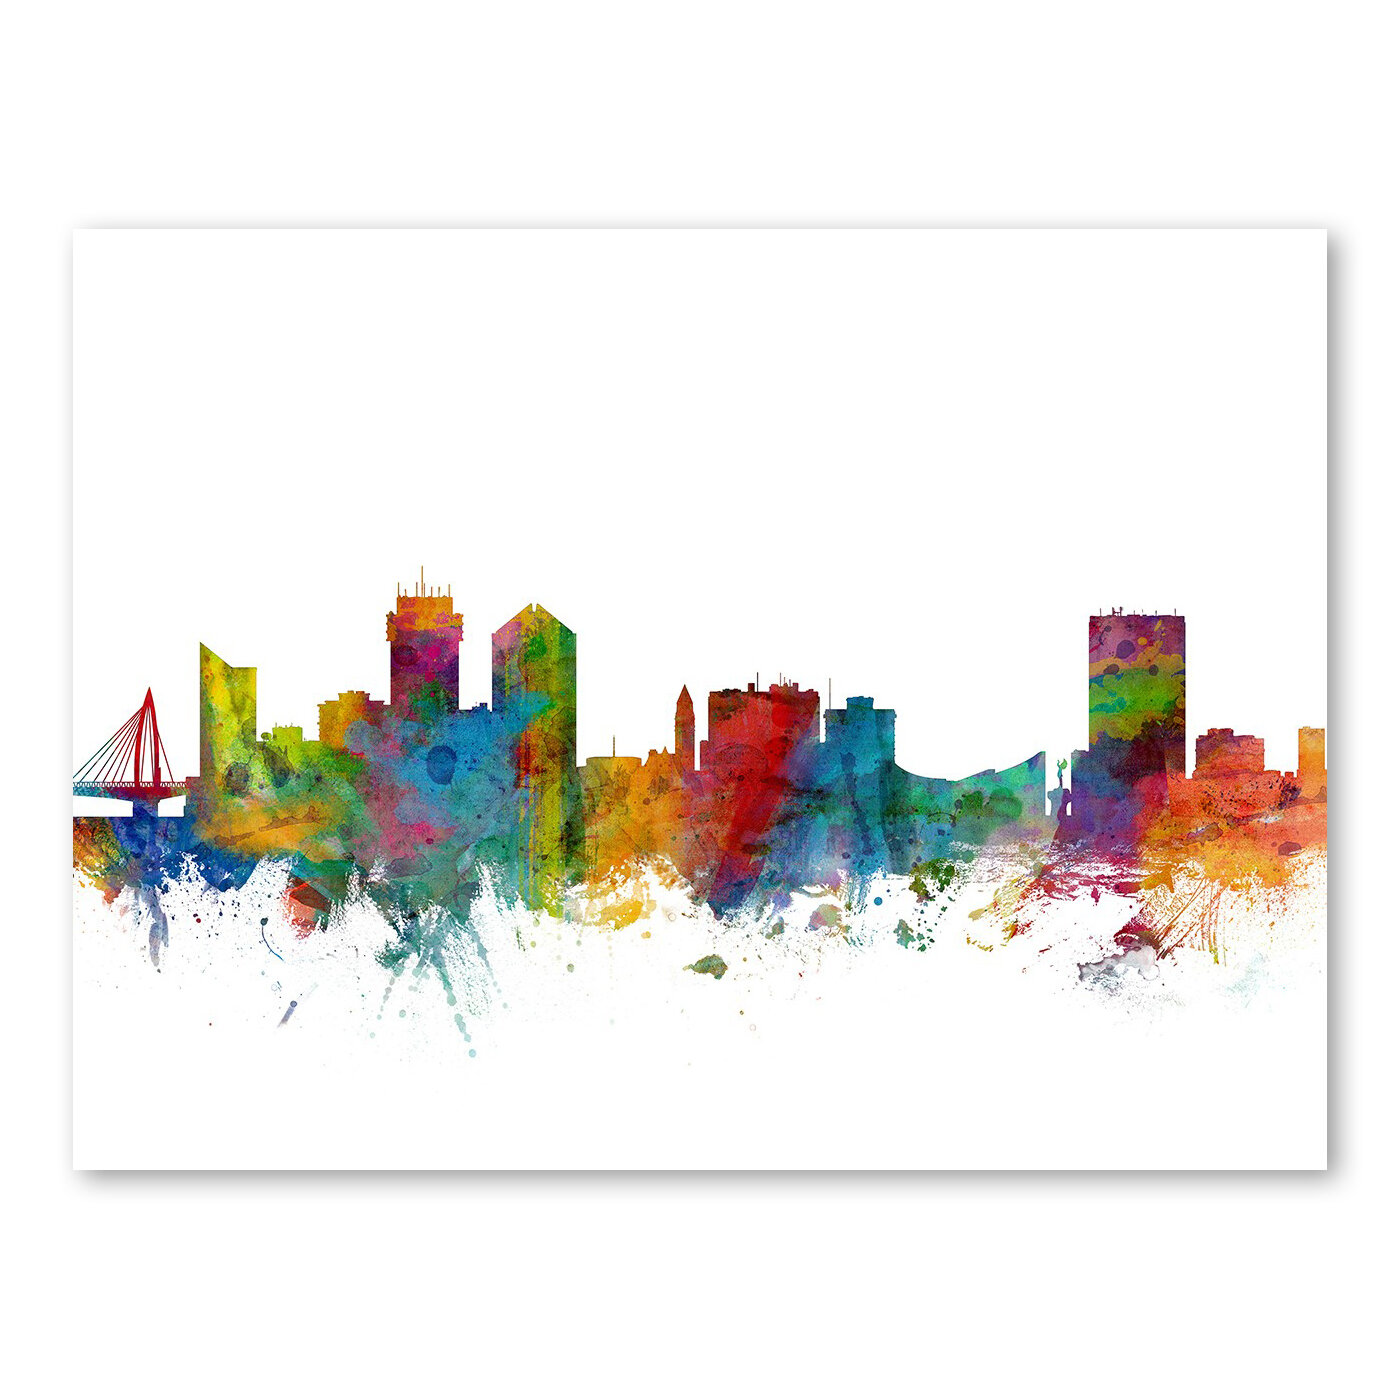 Ebern Designs Lanna Wichita Kansas Skyline Wall Mural